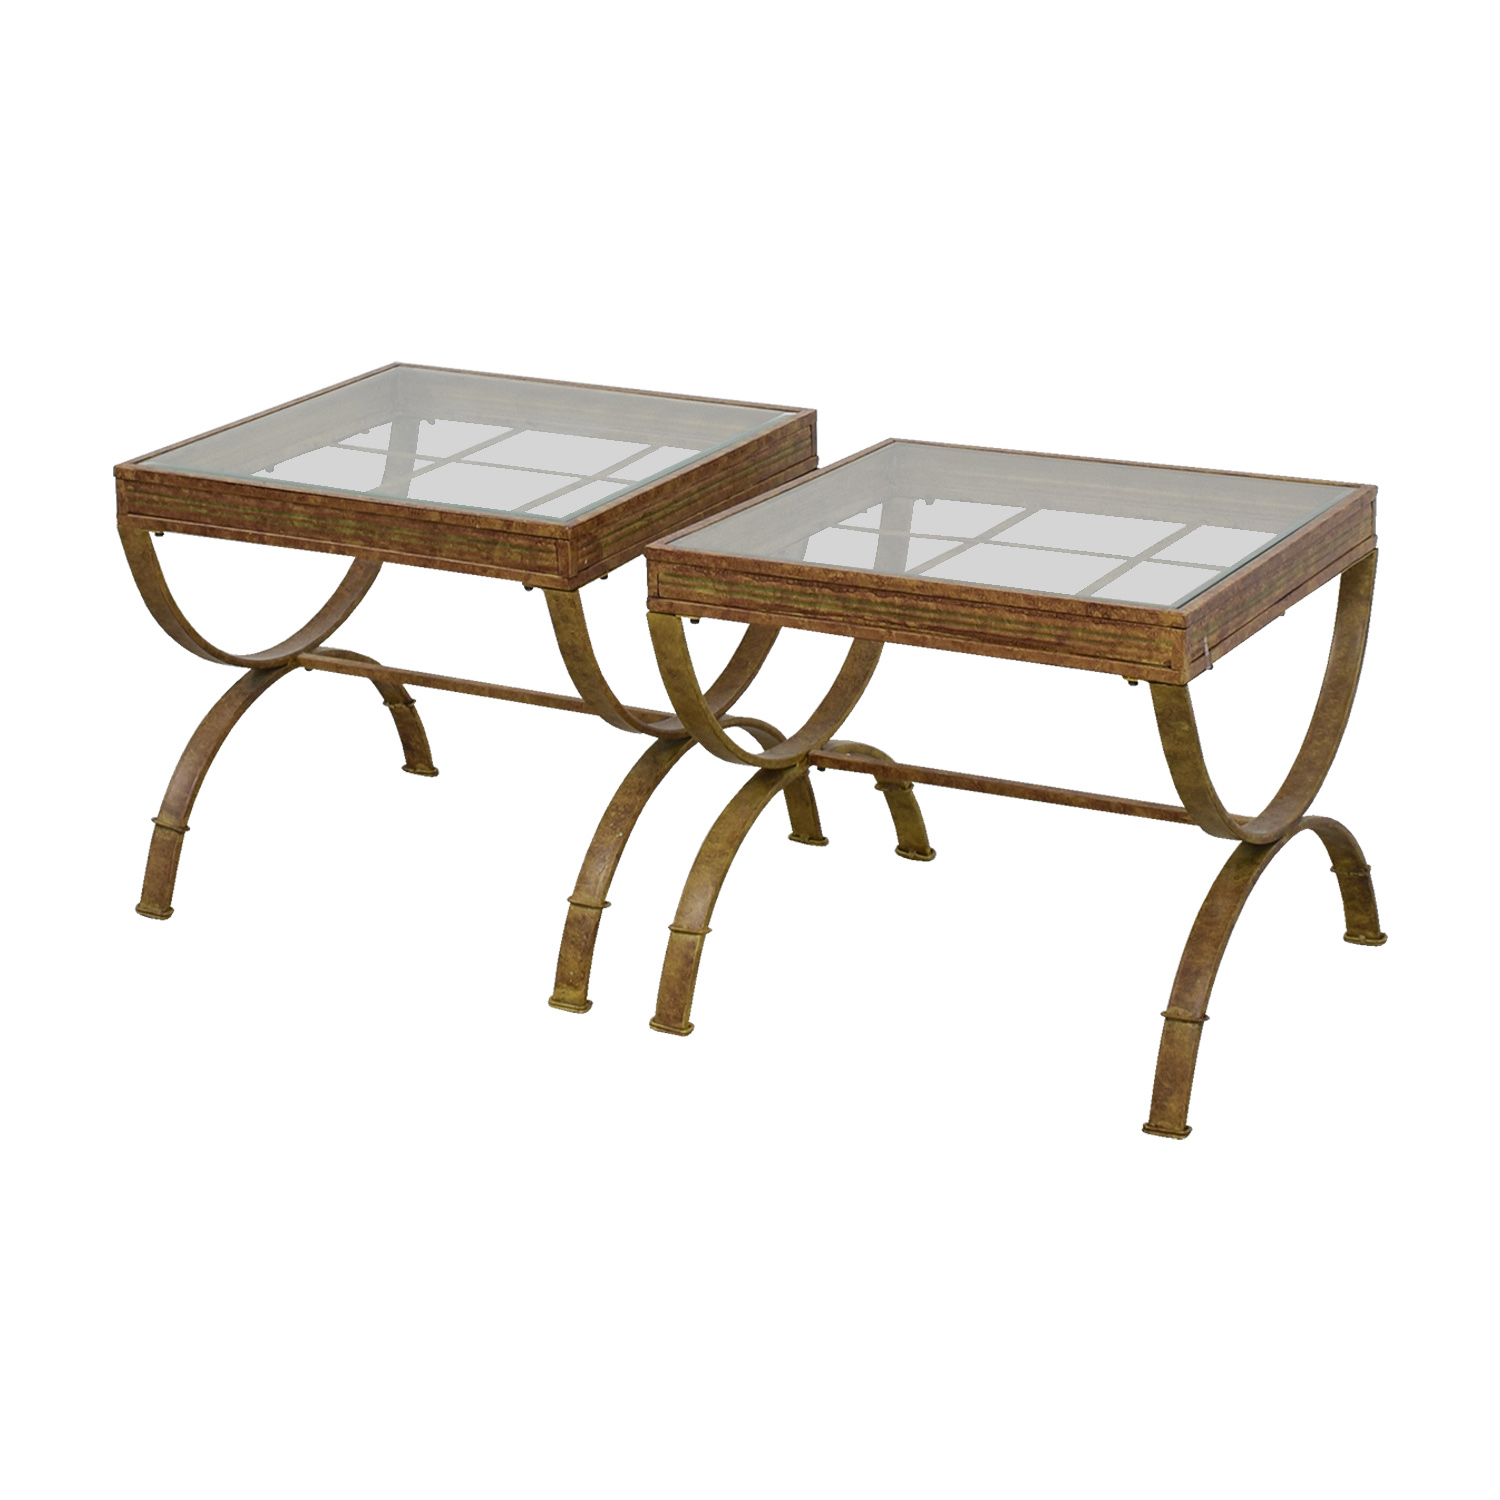 Bobs Furniture Bobs Furniture Brown and Glass End Tables dimensions